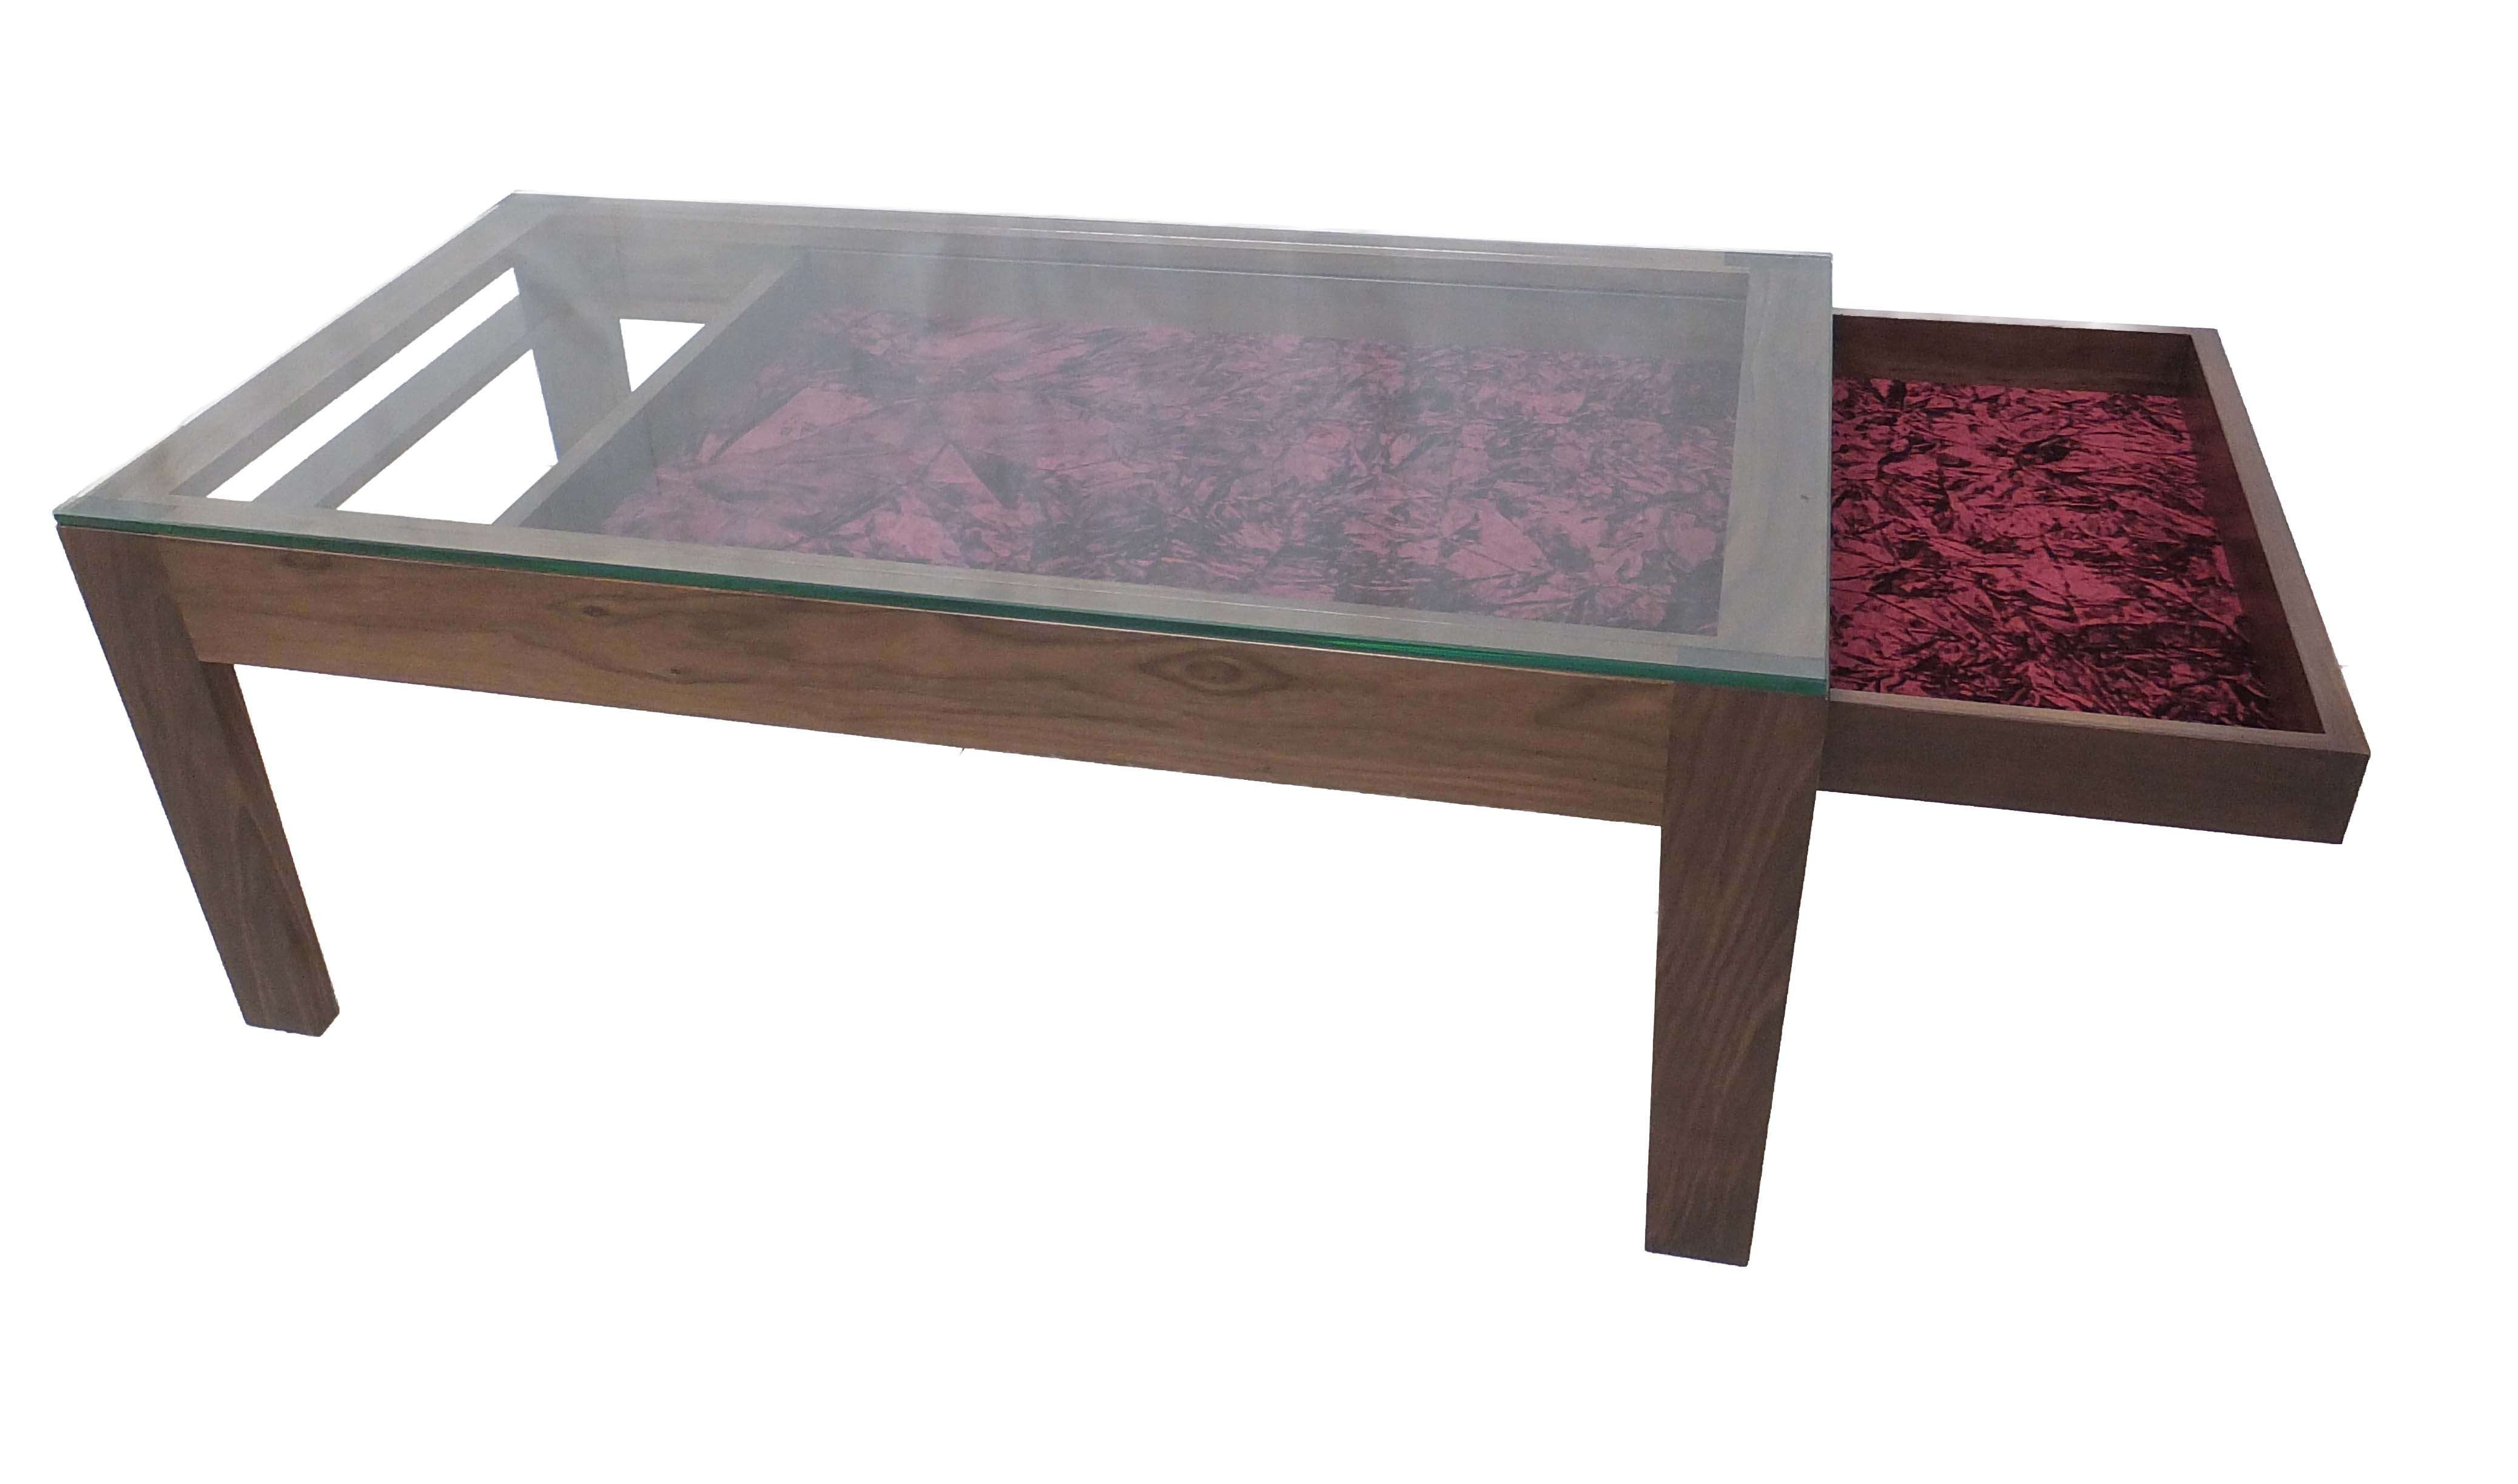 Coffee Table : Wonderful Glass Top Display Table Coffee Table With With Best And Newest Glass Top Display Coffee Tables With Drawers (View 3 of 20)